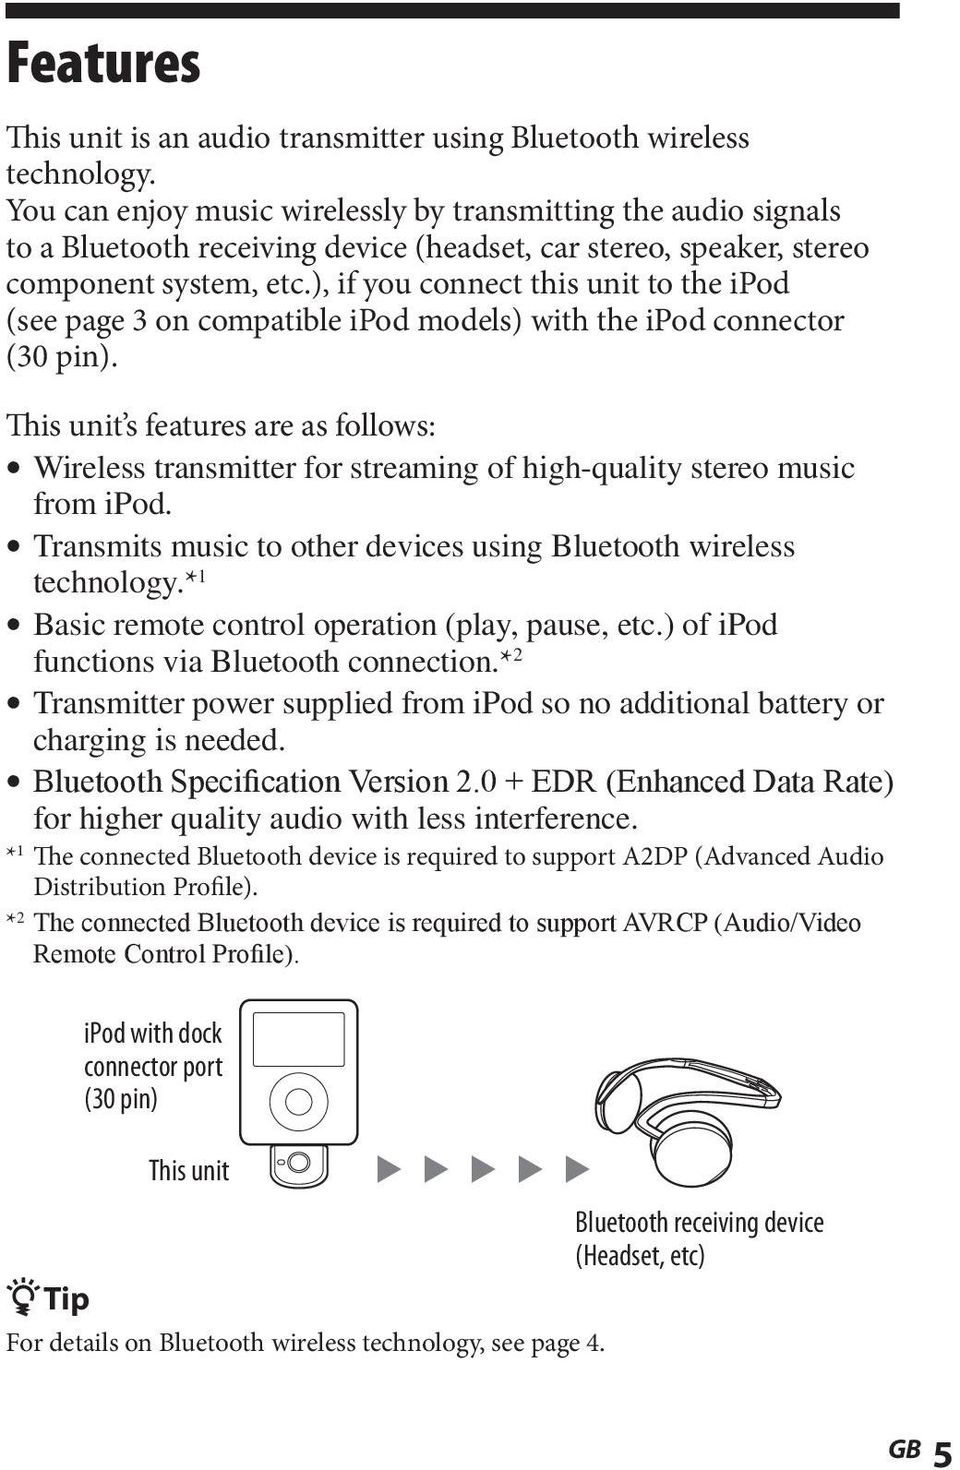 ), if you connect this unit to the ipod (see page 3 on compatible ipod models) with the ipod connector (30 pin).